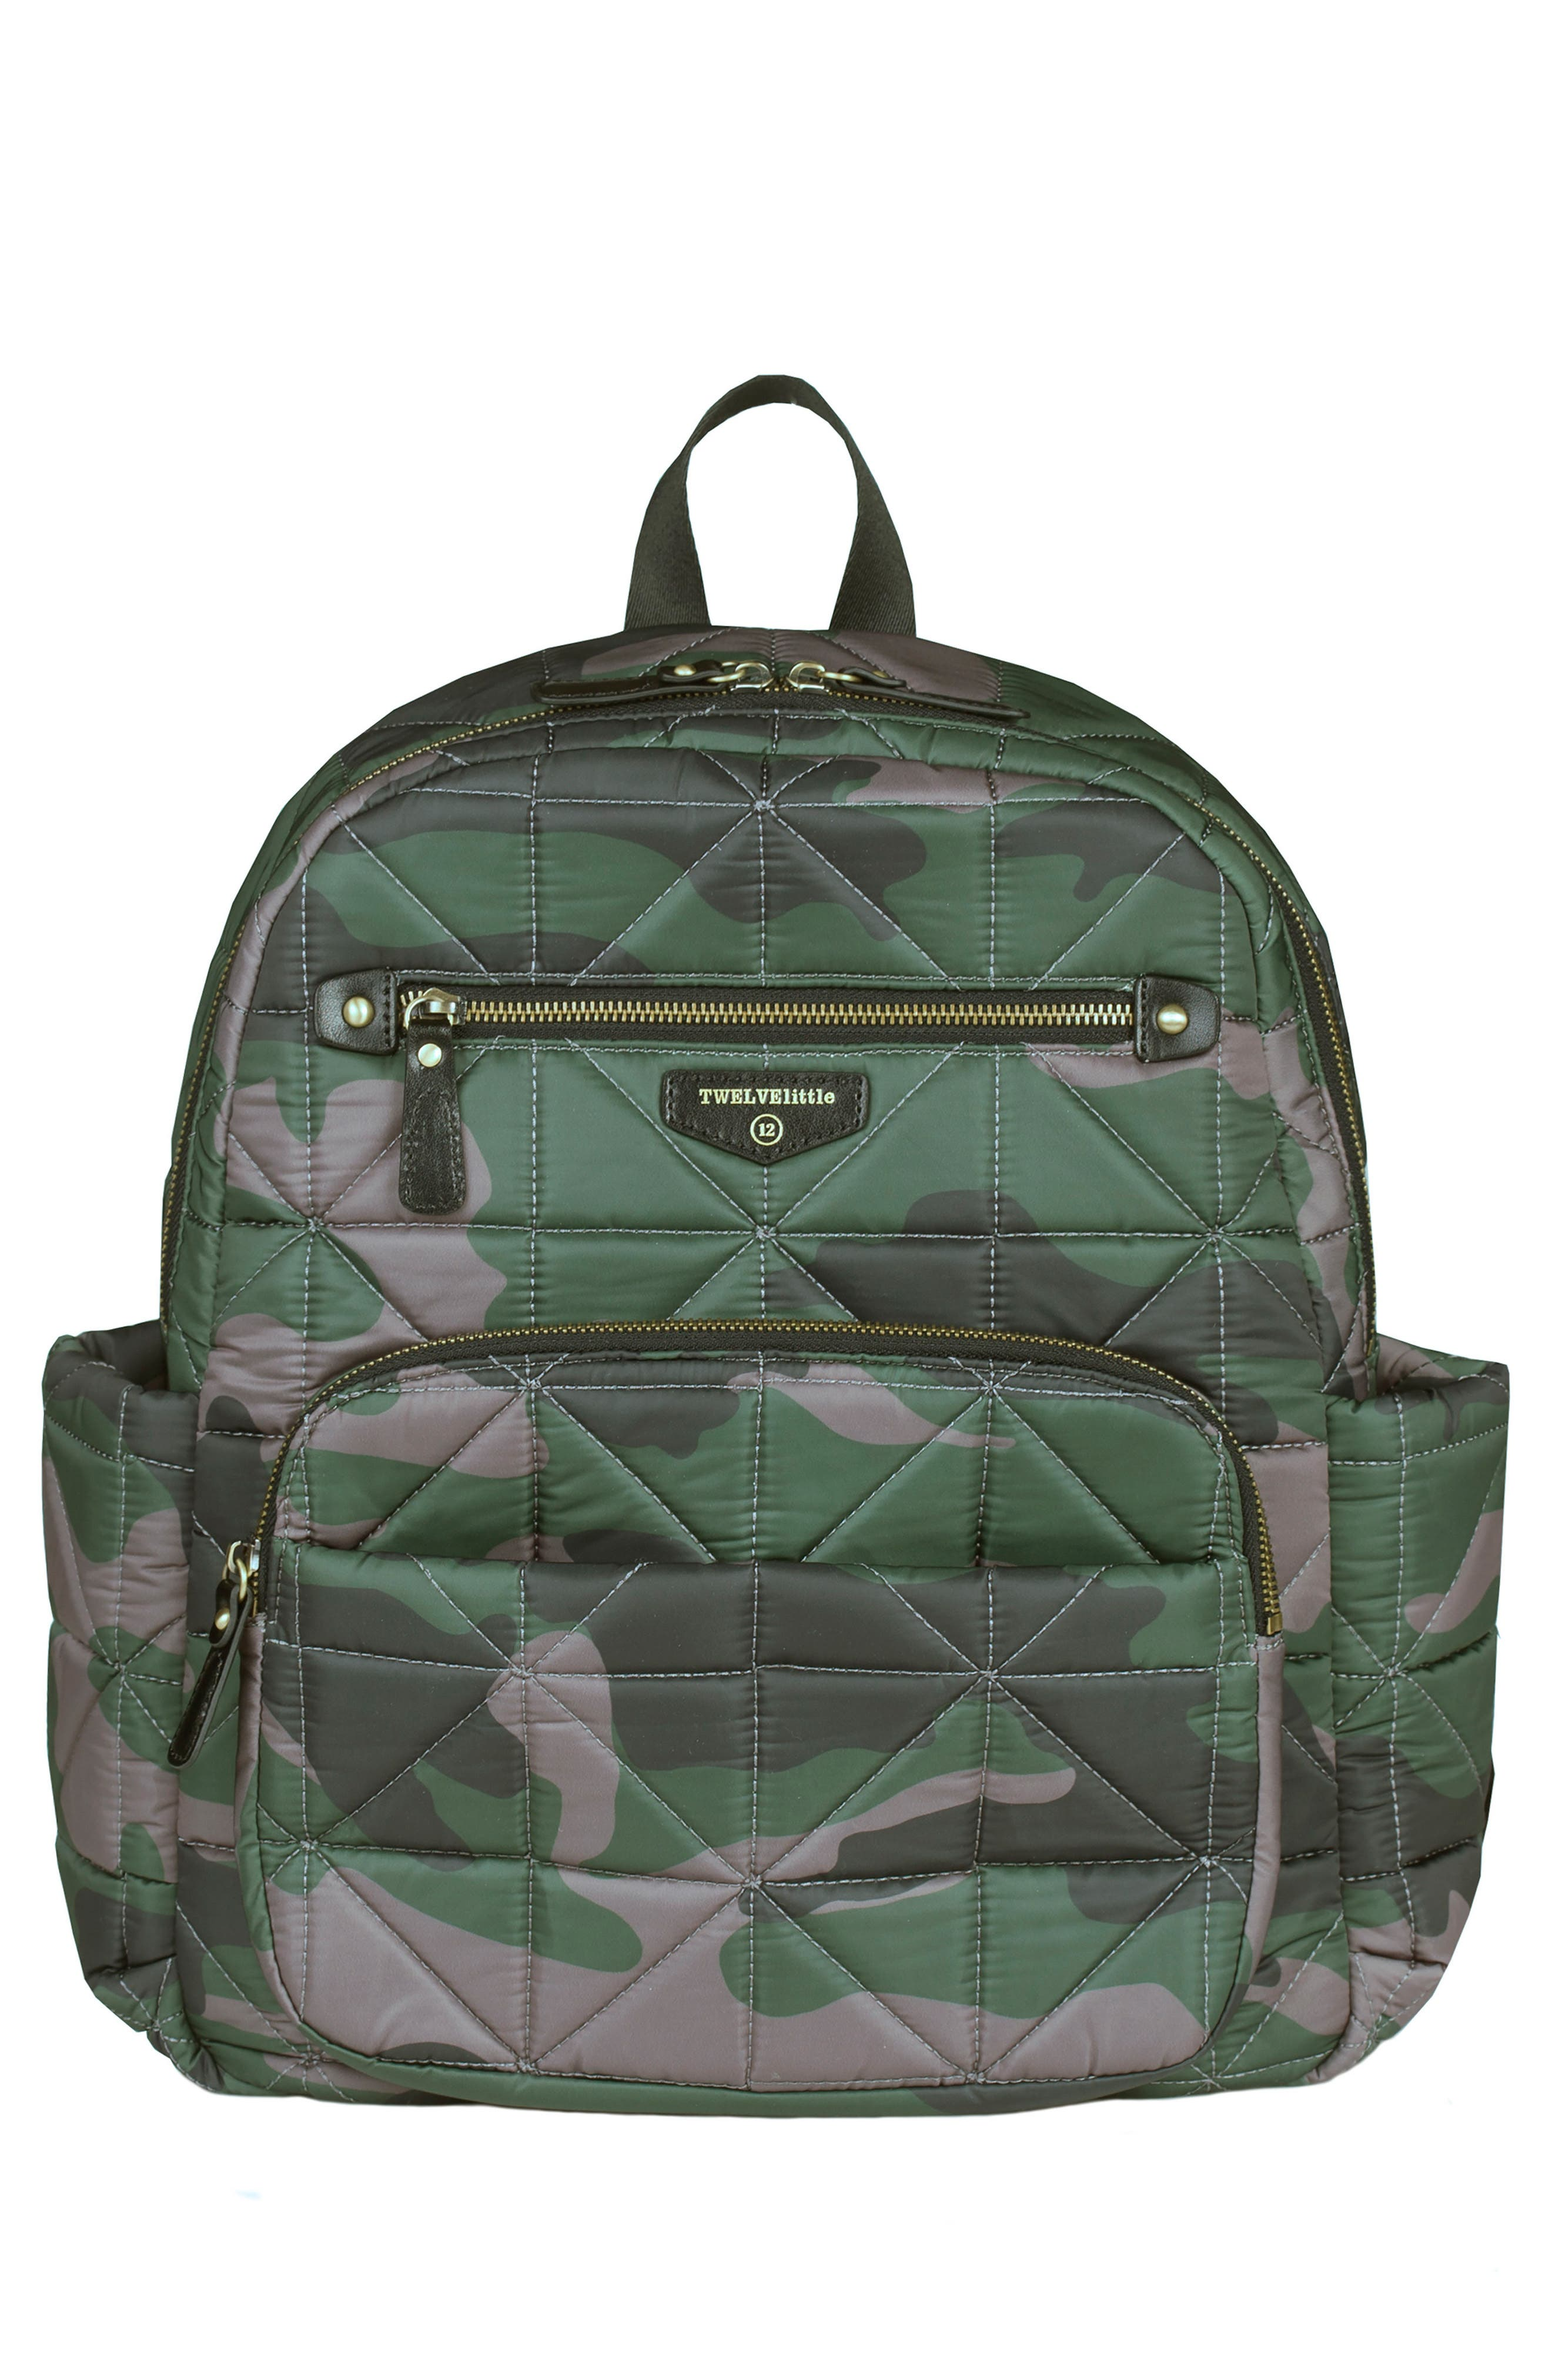 Alternate Image 1 Selected - TWELVElittle Companion Quilted Nylon Diaper Backpack